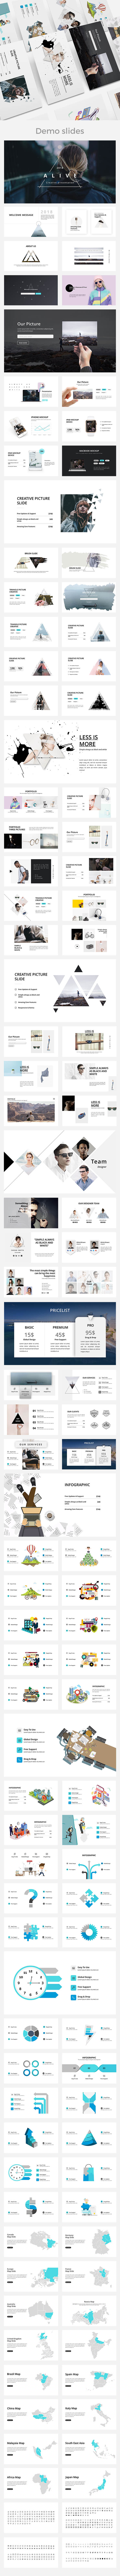 GraphicRiver Alive Creative Powerpoint Template 21197301